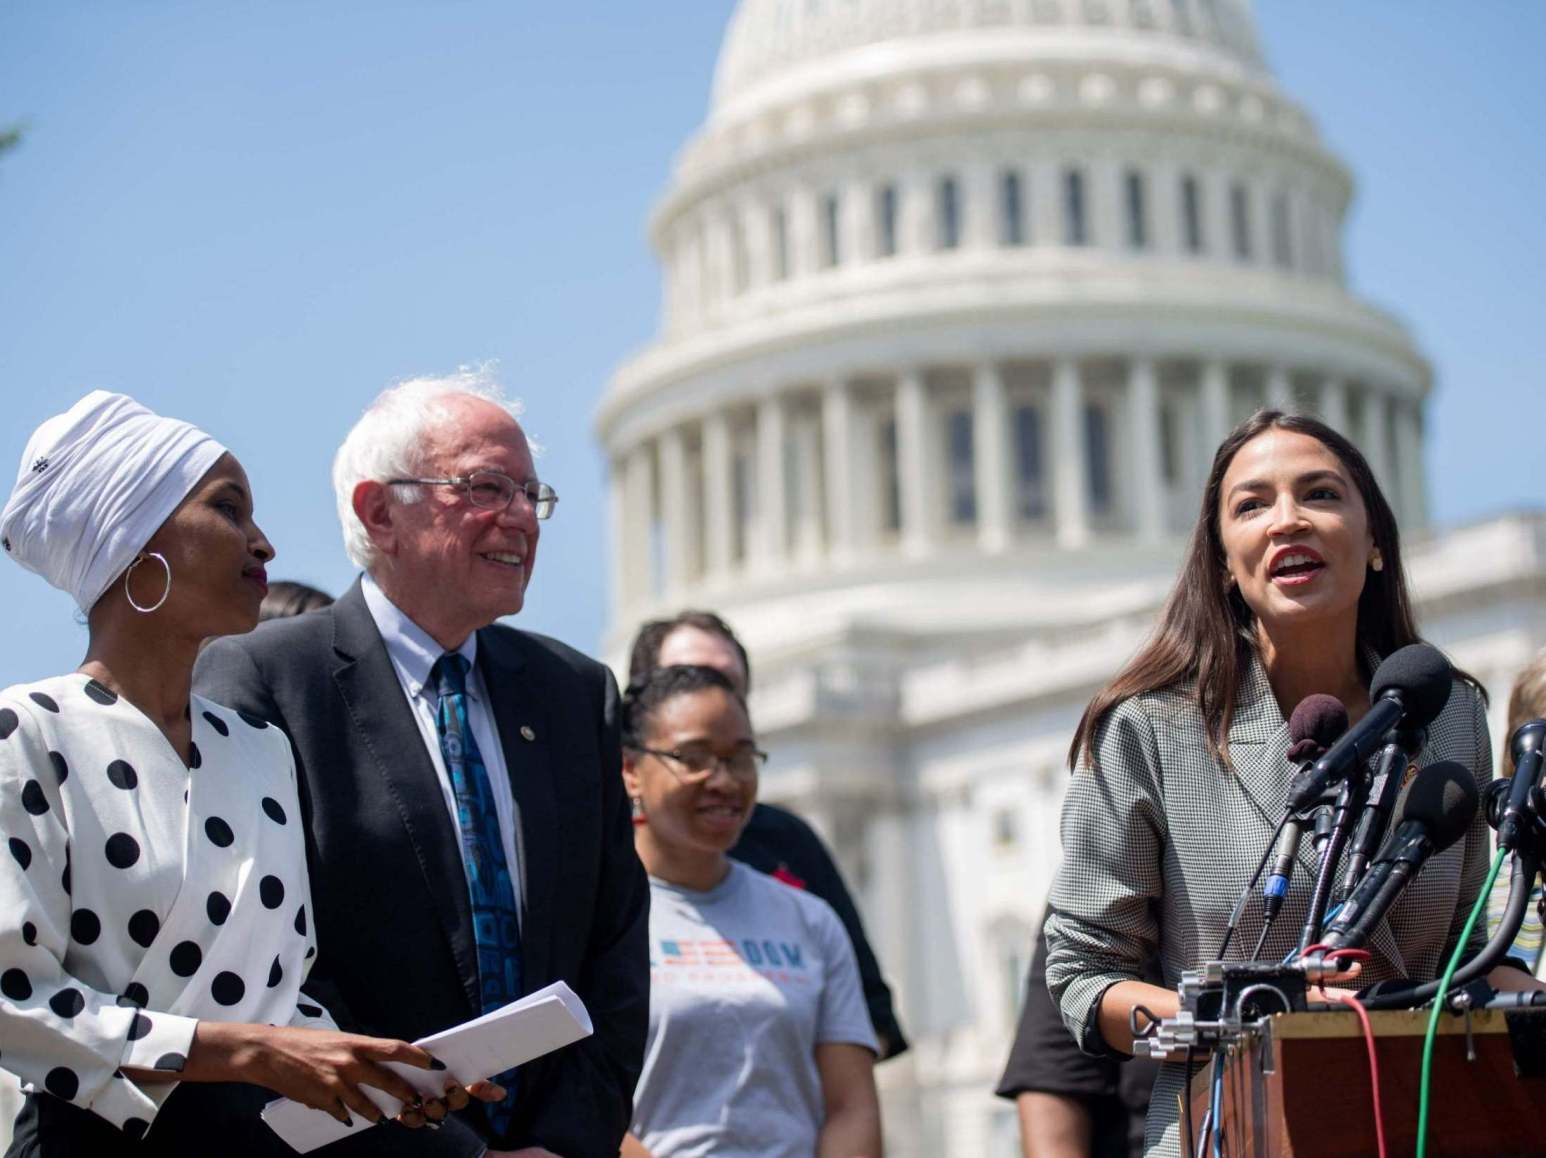 Donald Trump tells AOC and Ilhan Omar to go back to their original countries